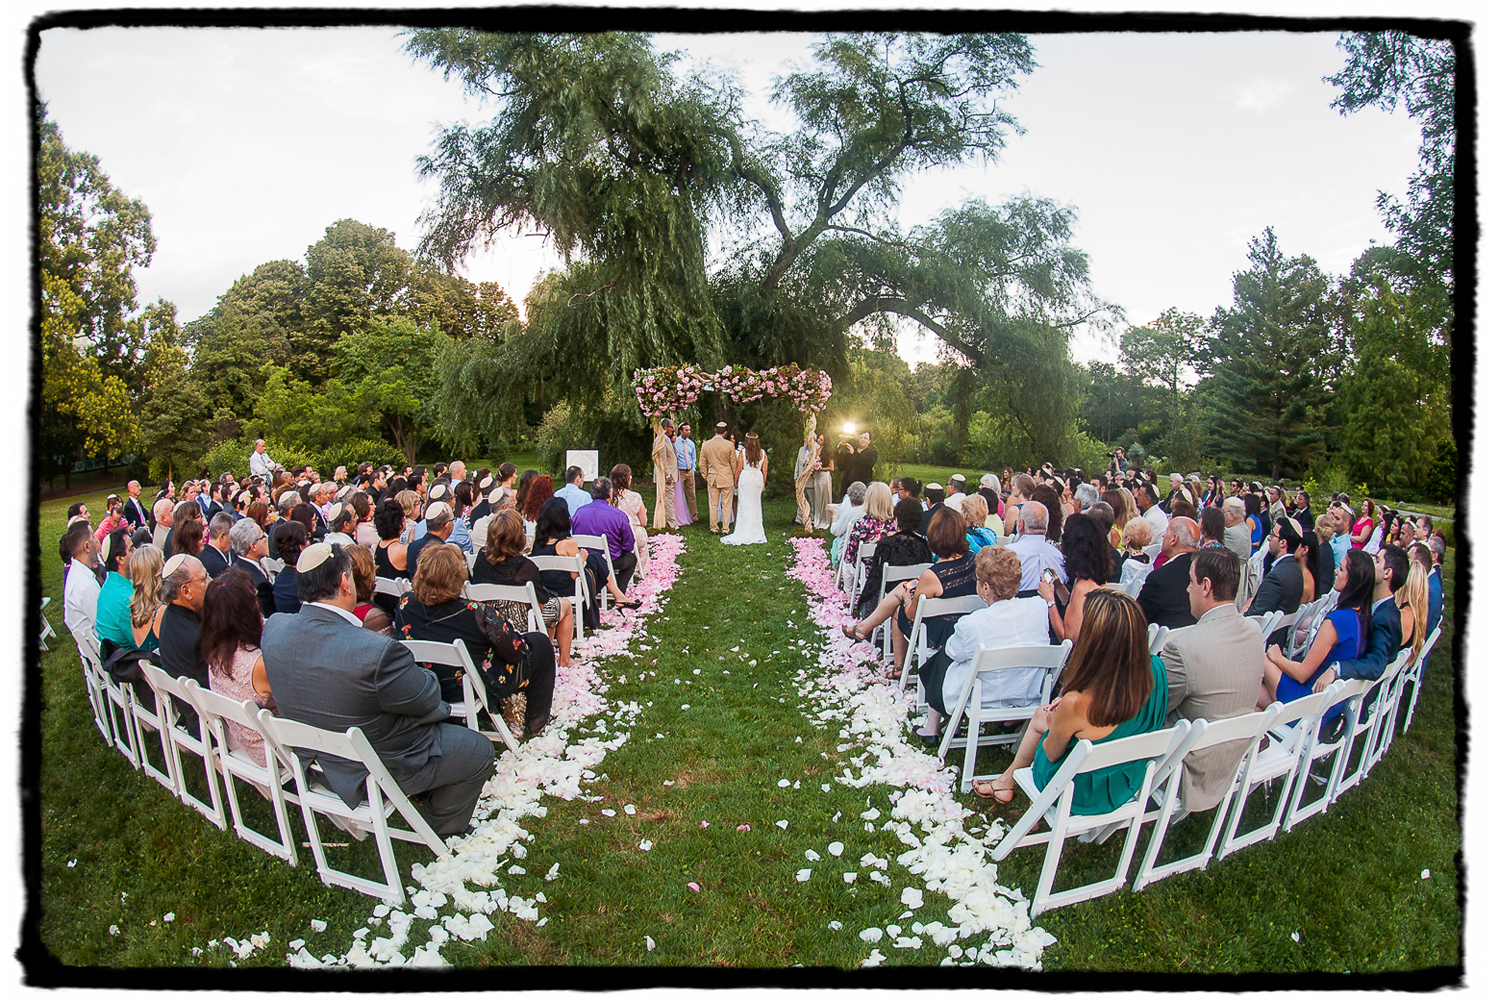 Rorie & Adam's summer ceremony under a willow tree with ombre rose petals in the aisle at Brooklyn Botanic Garden.